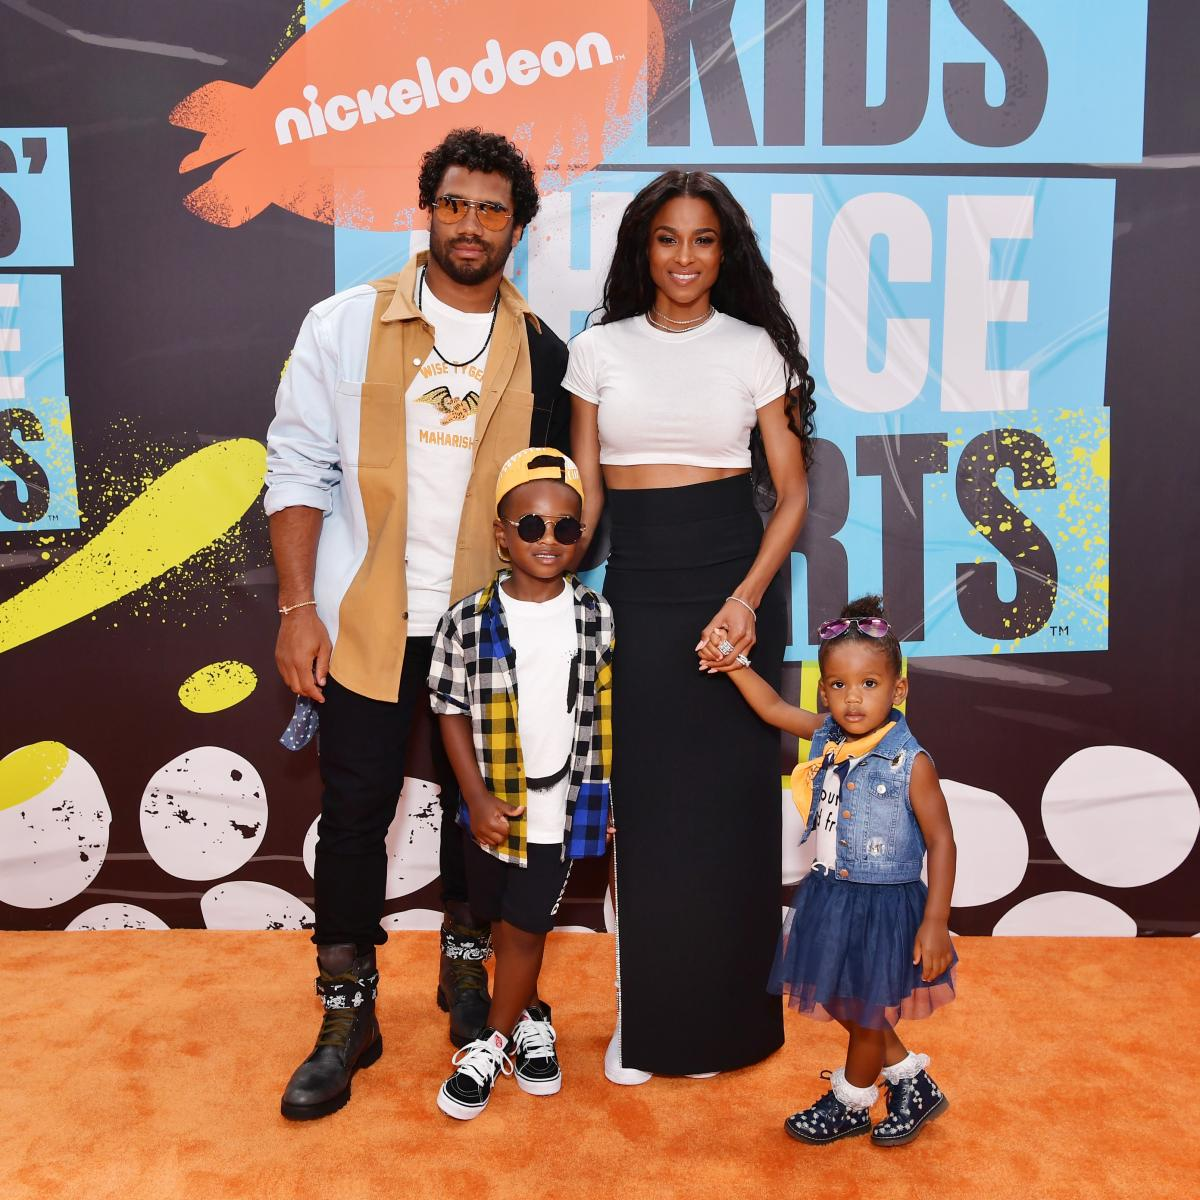 Russell Wilson Ciara Announce They Re Expecting 2nd Child Together Bleacher Report Latest News Videos And Highlights